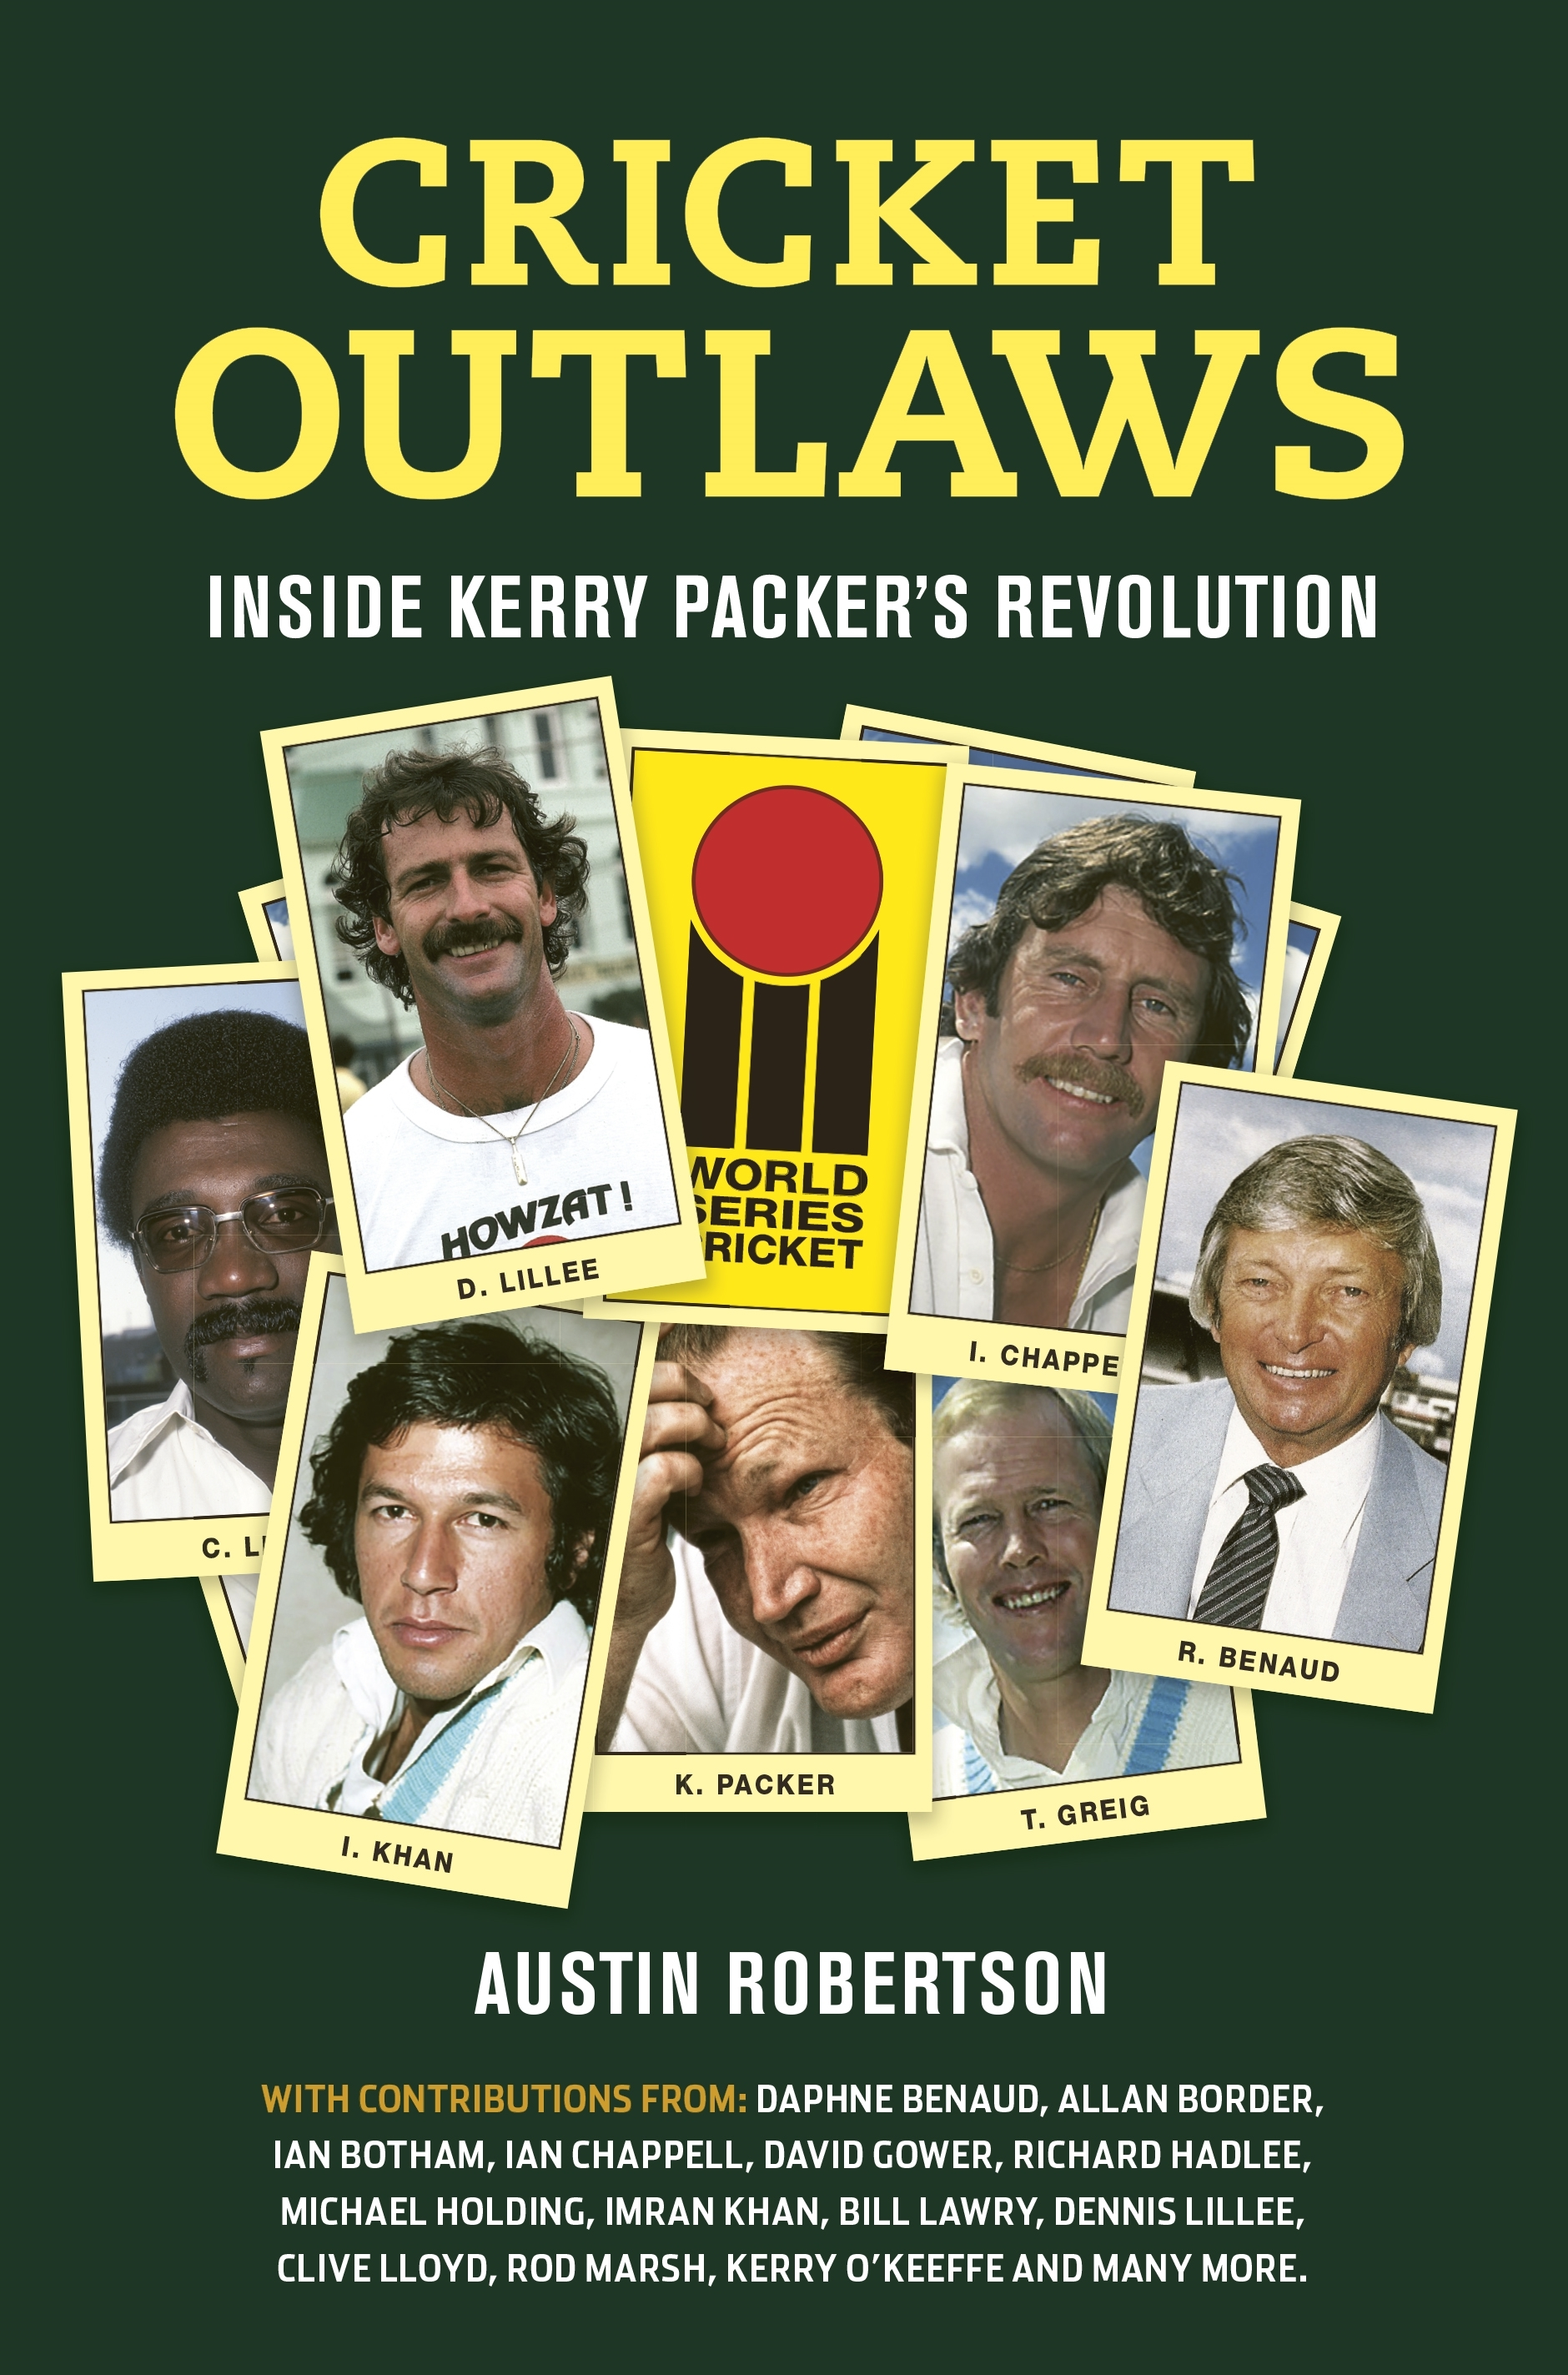 Cricket Outlaws Inside Kerry Packer's World Series Revolution